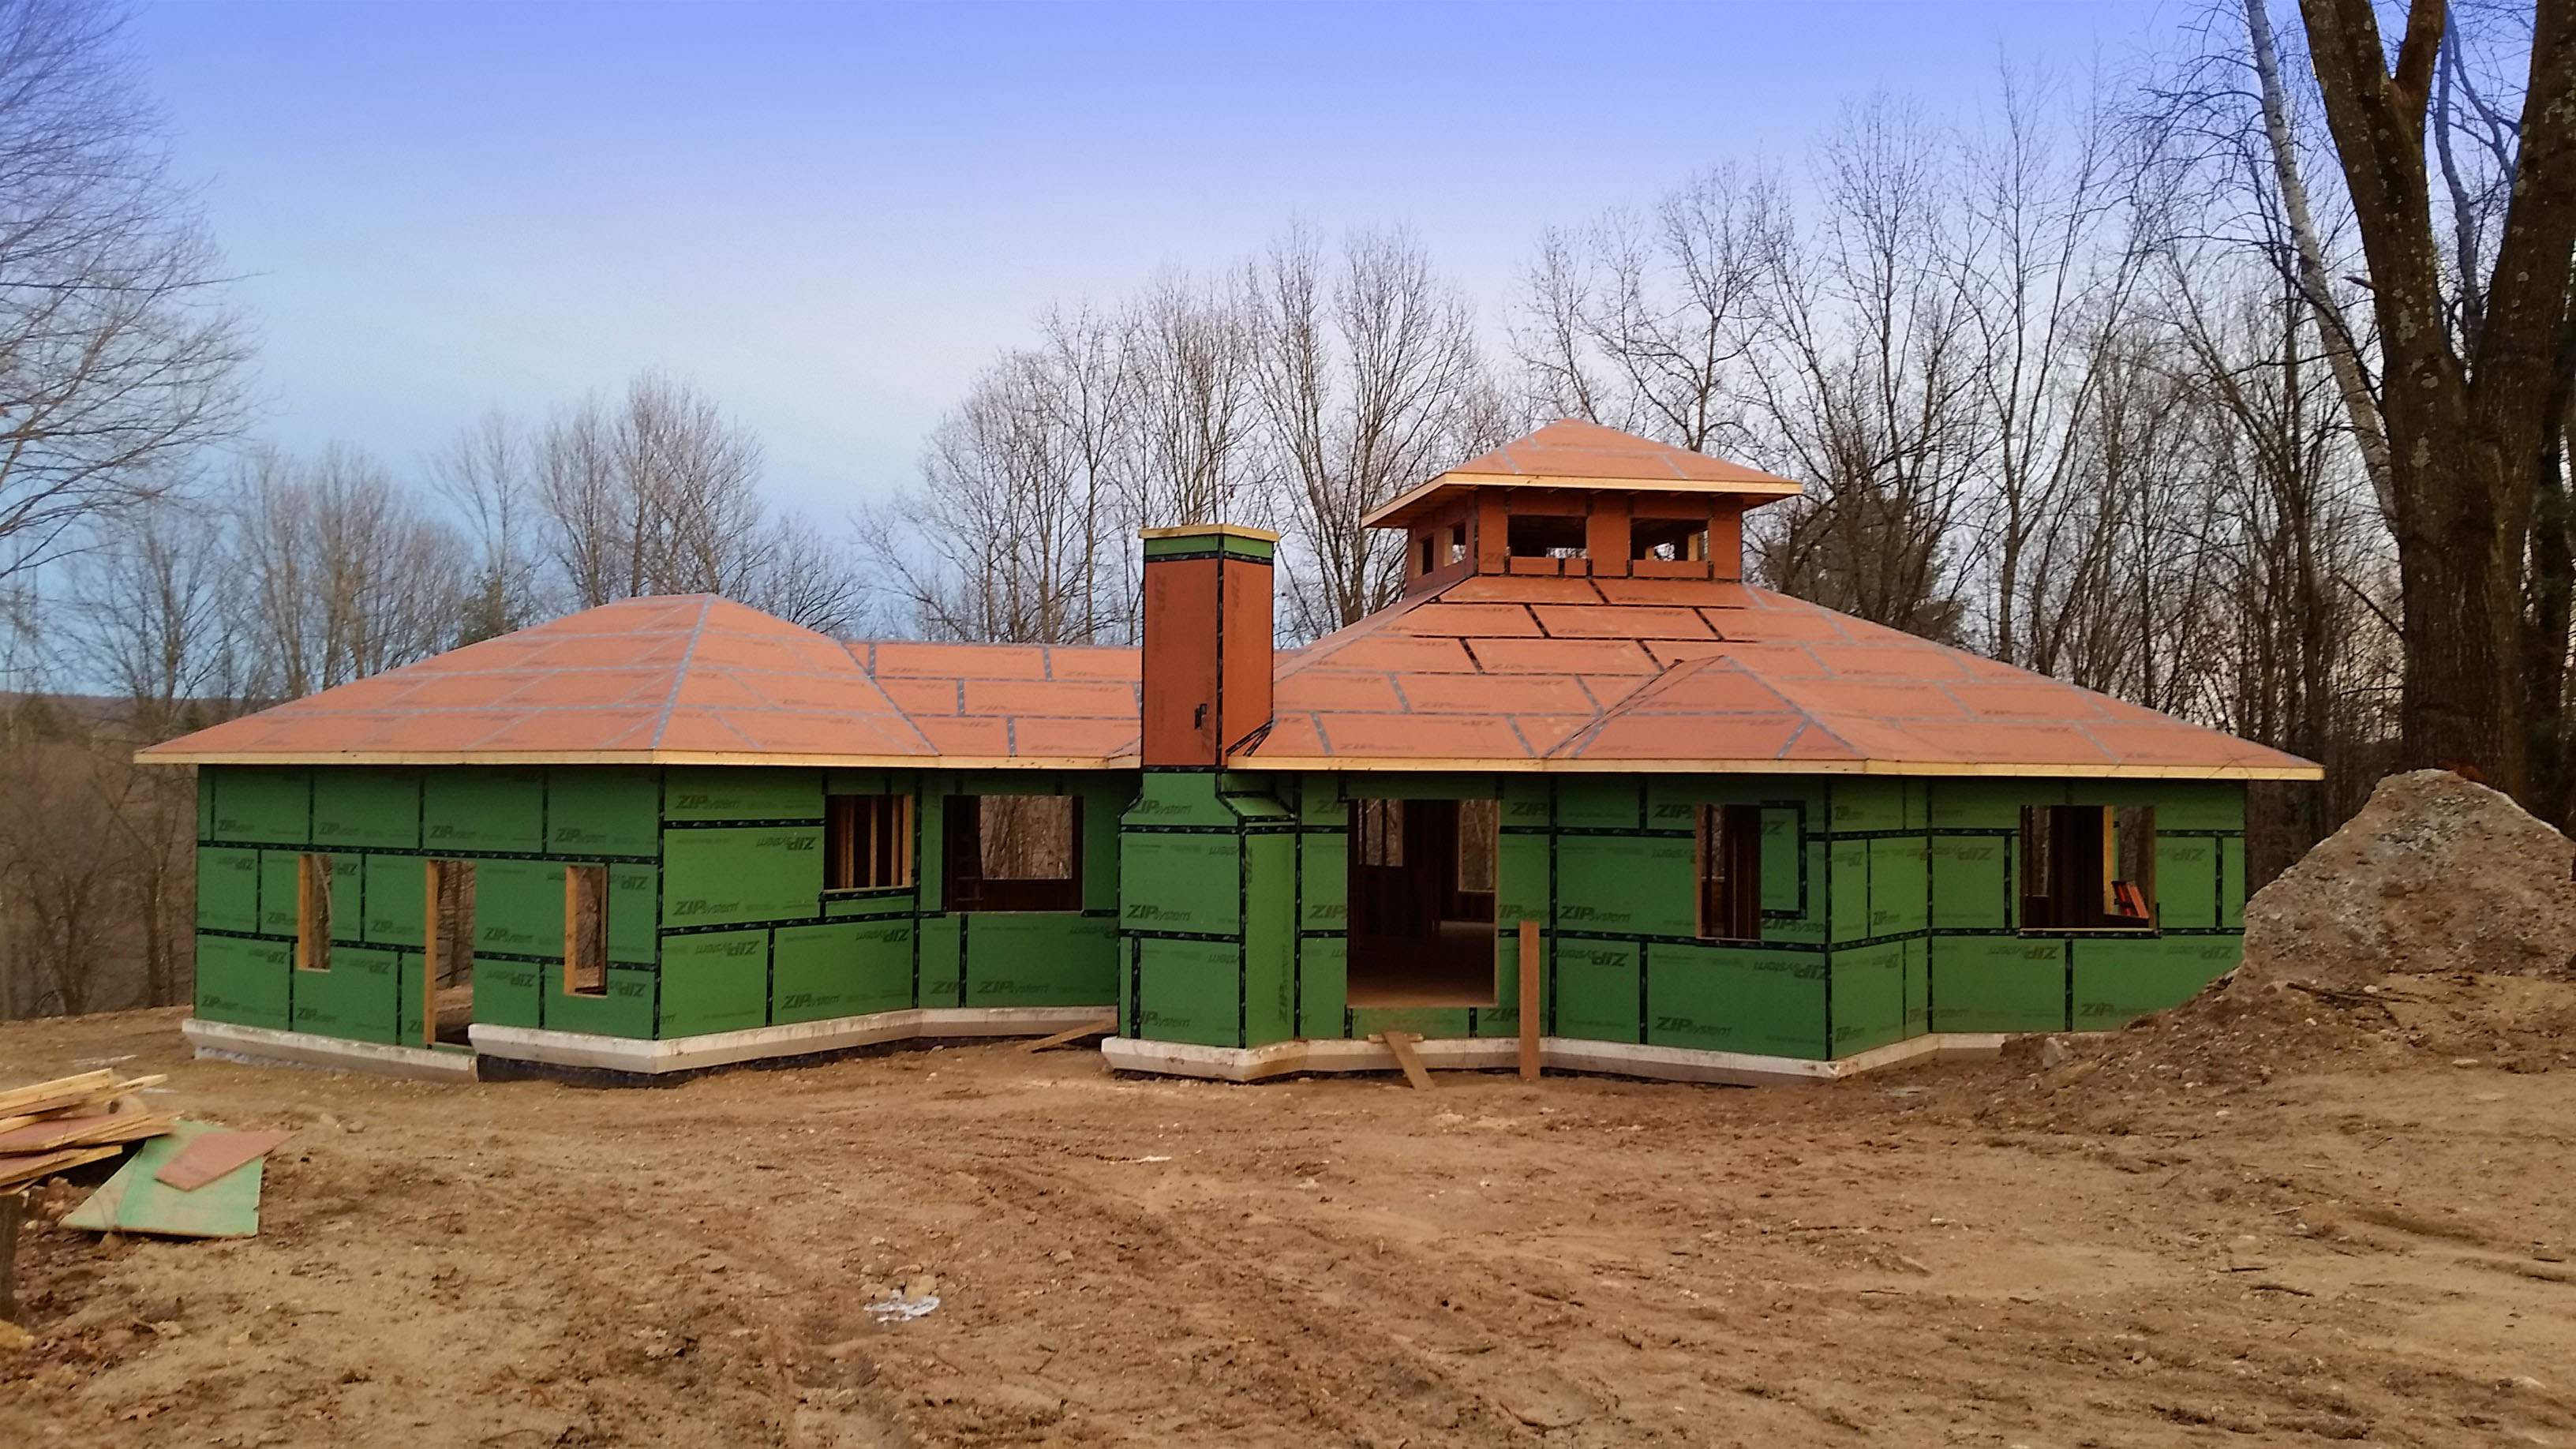 Dan's Construction Service Inc builds a custom home in Ludlow, MA